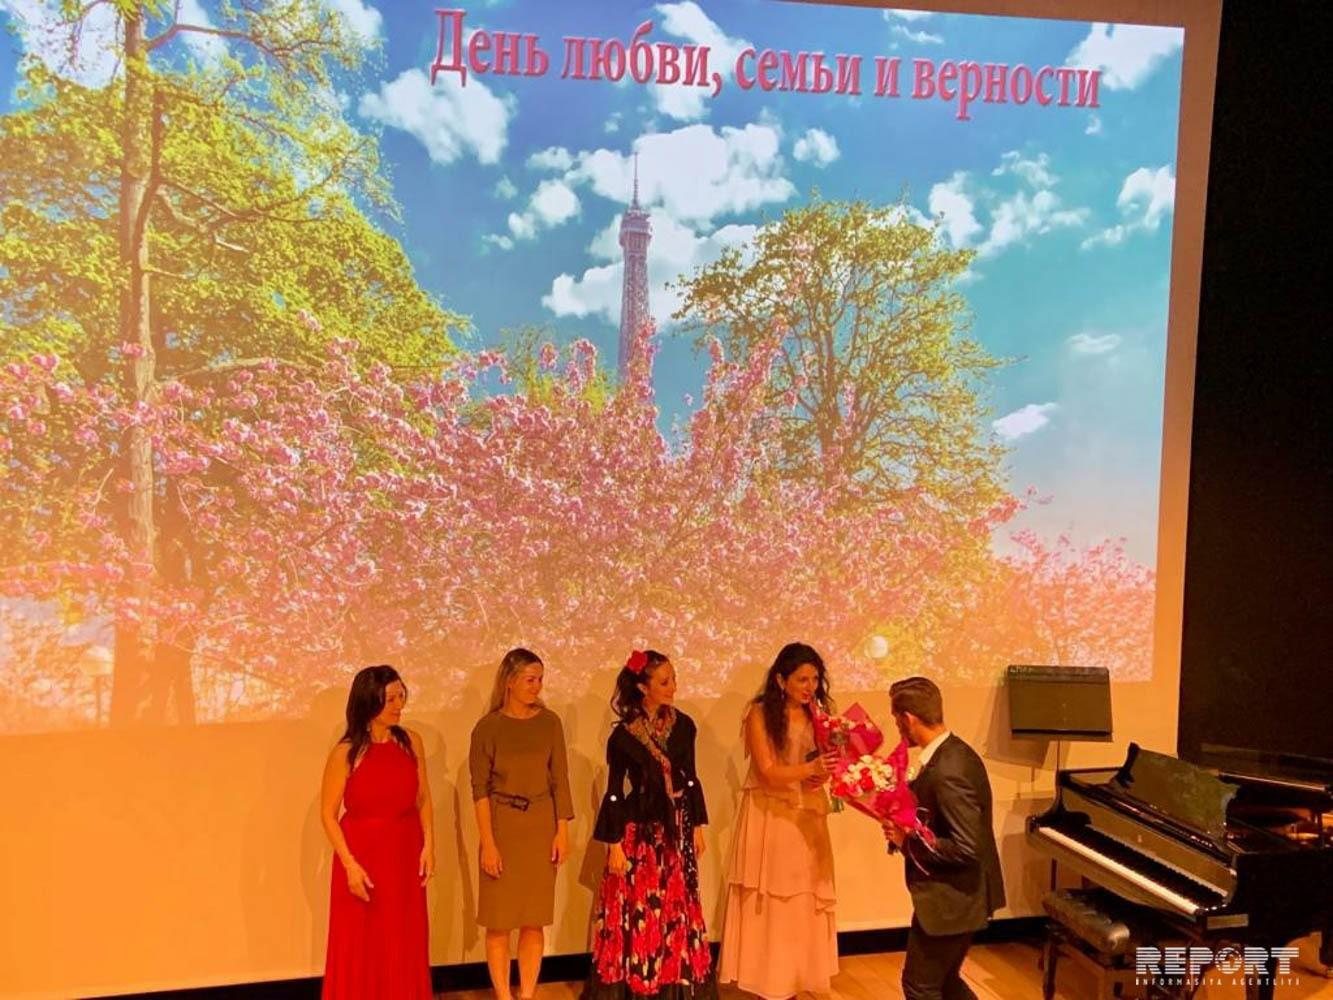 Works of Azerbaijani composers performed in Paris - PHOTO